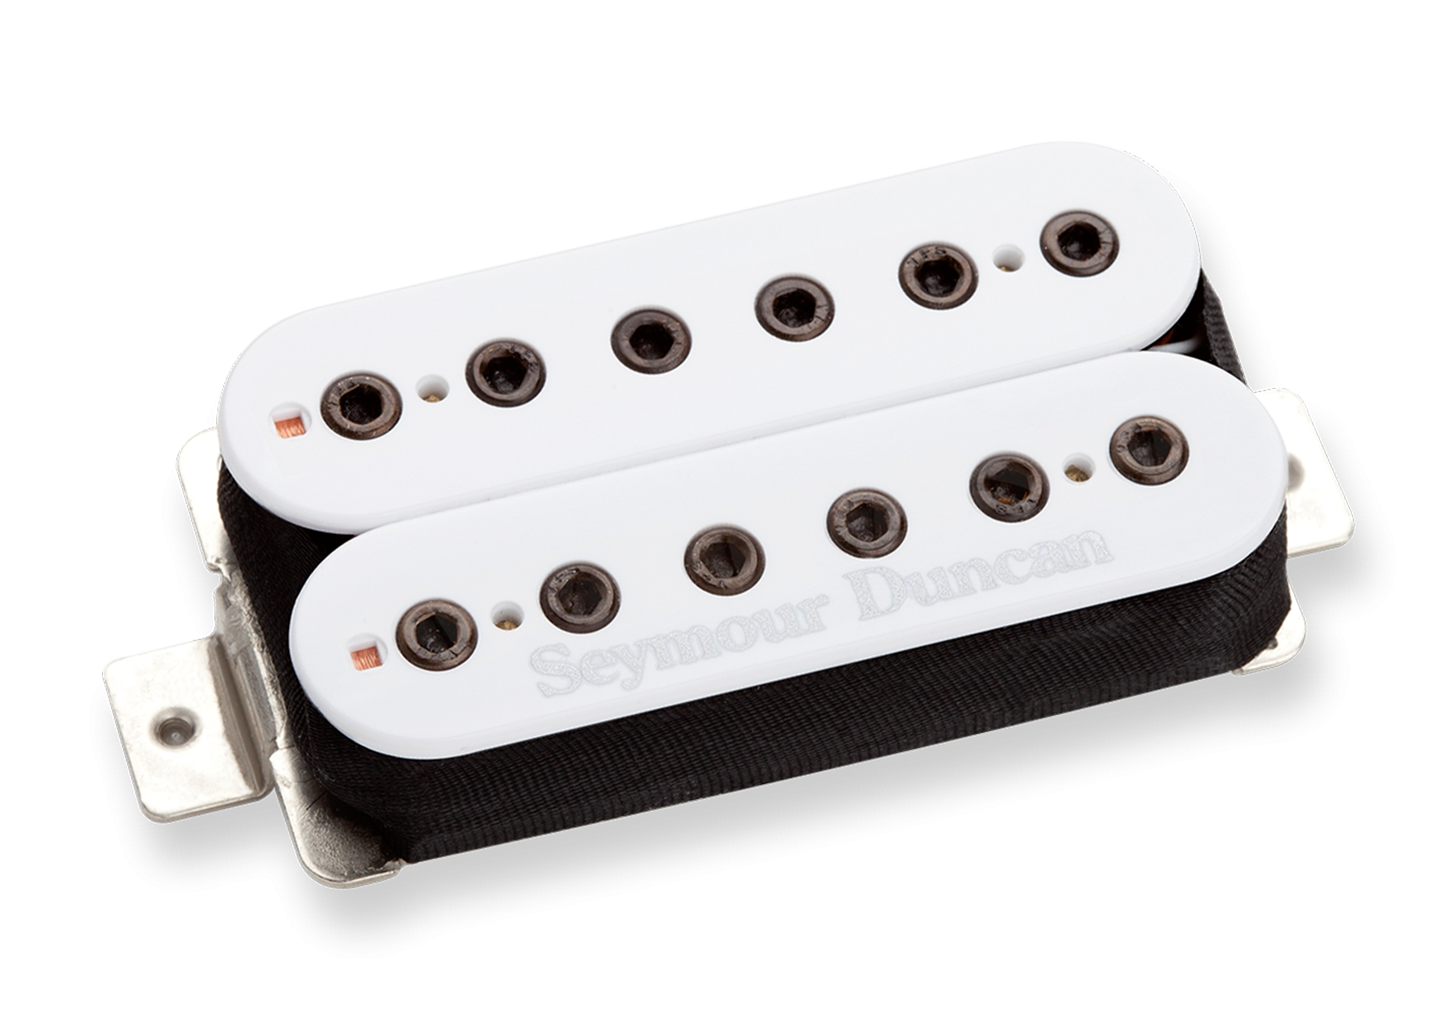 Seymour Duncan Full Shred Humbucker - SH-10B Bridge White